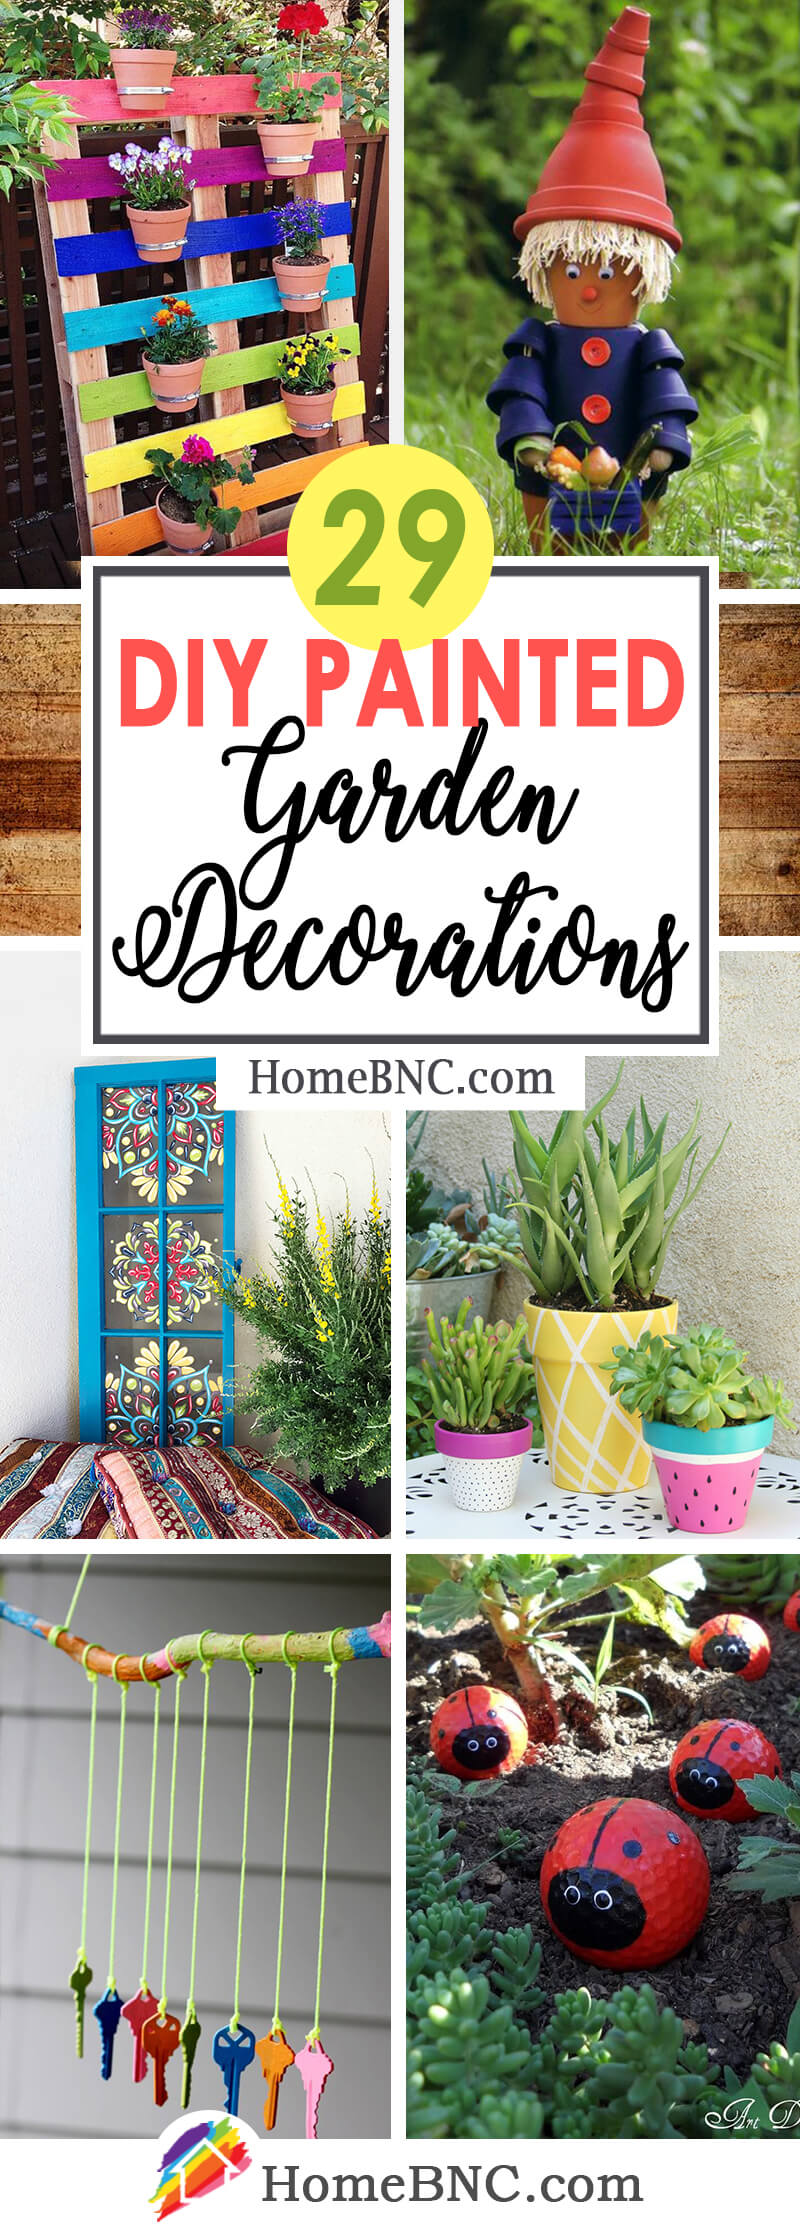 7 Best DIY Painted Garden Decoration Ideas and Designs for 7